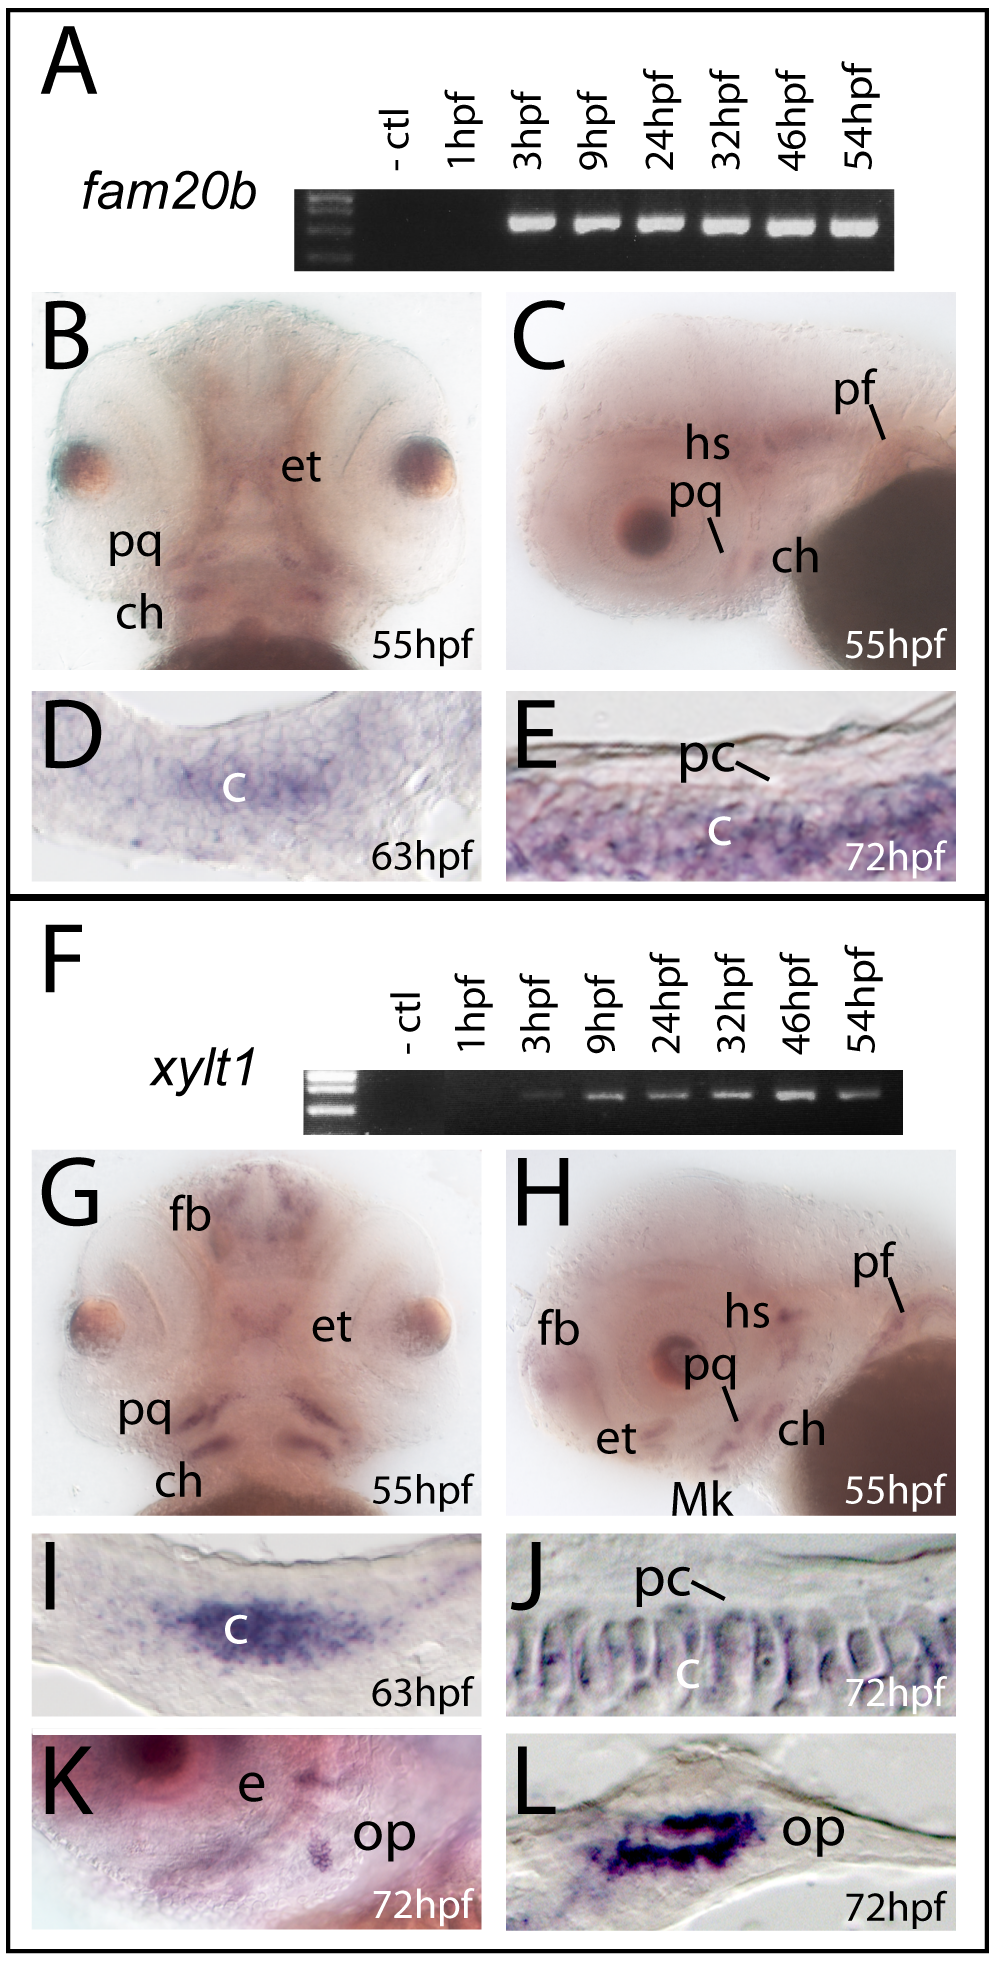 <i>fam20b</i> and <i>xylt1</i> are expressed in chondrocytes, but not in perichondrium.